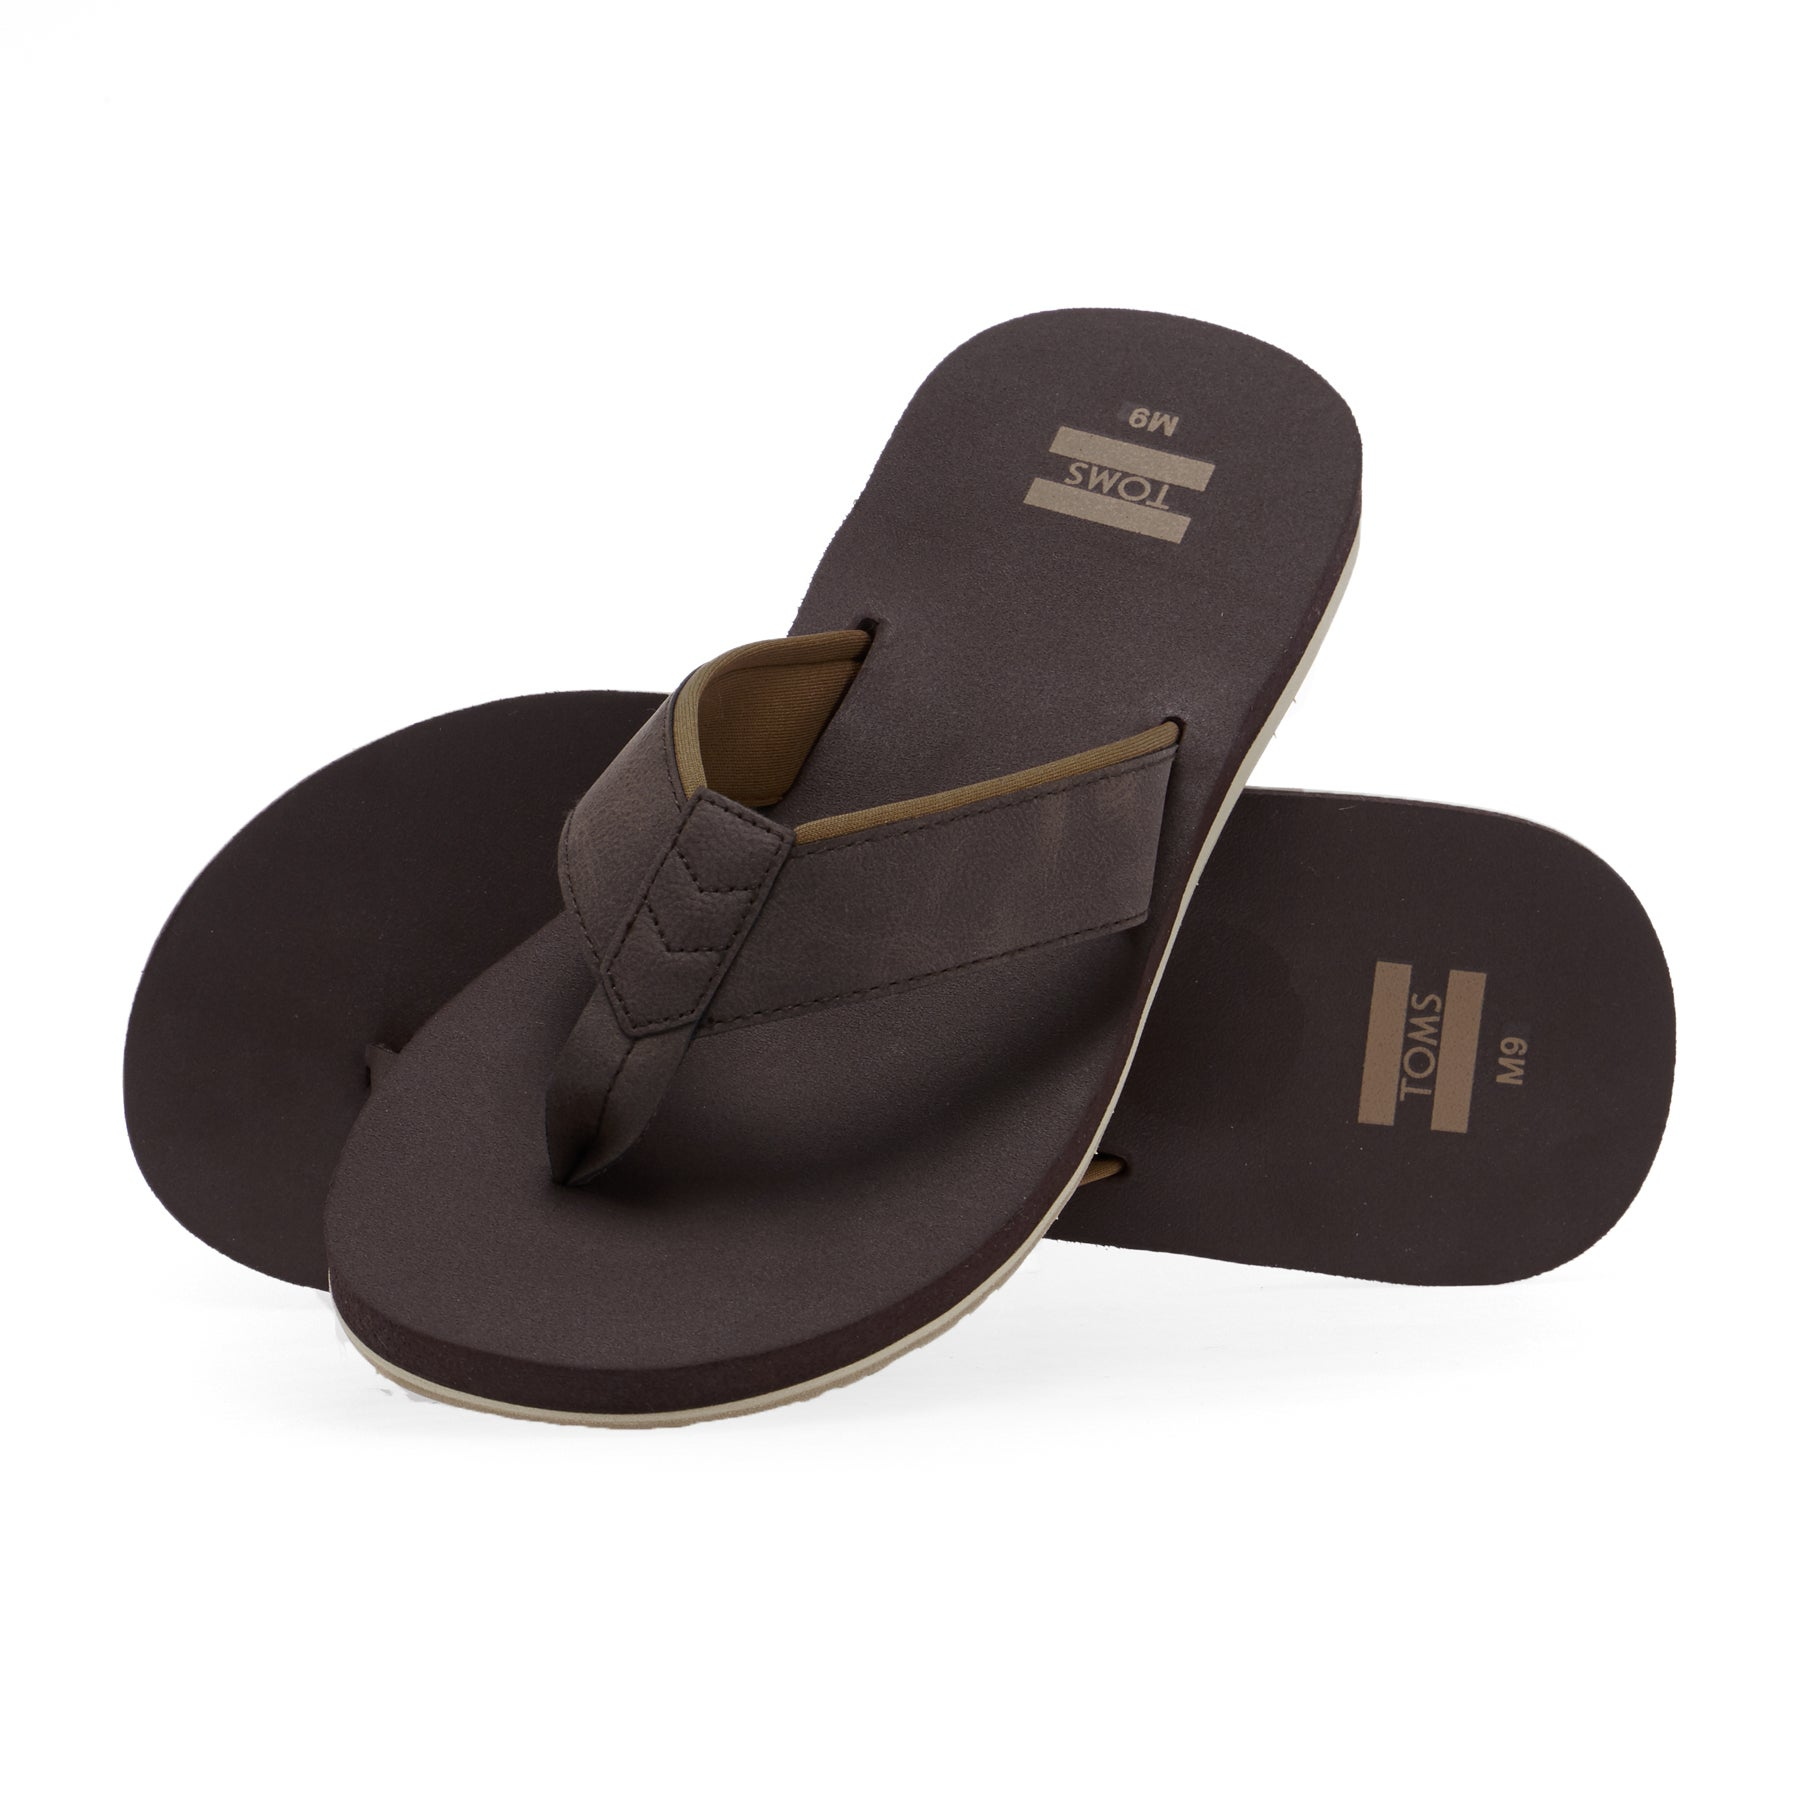 Toms Carilo Slip On Shoes - Dark Brown